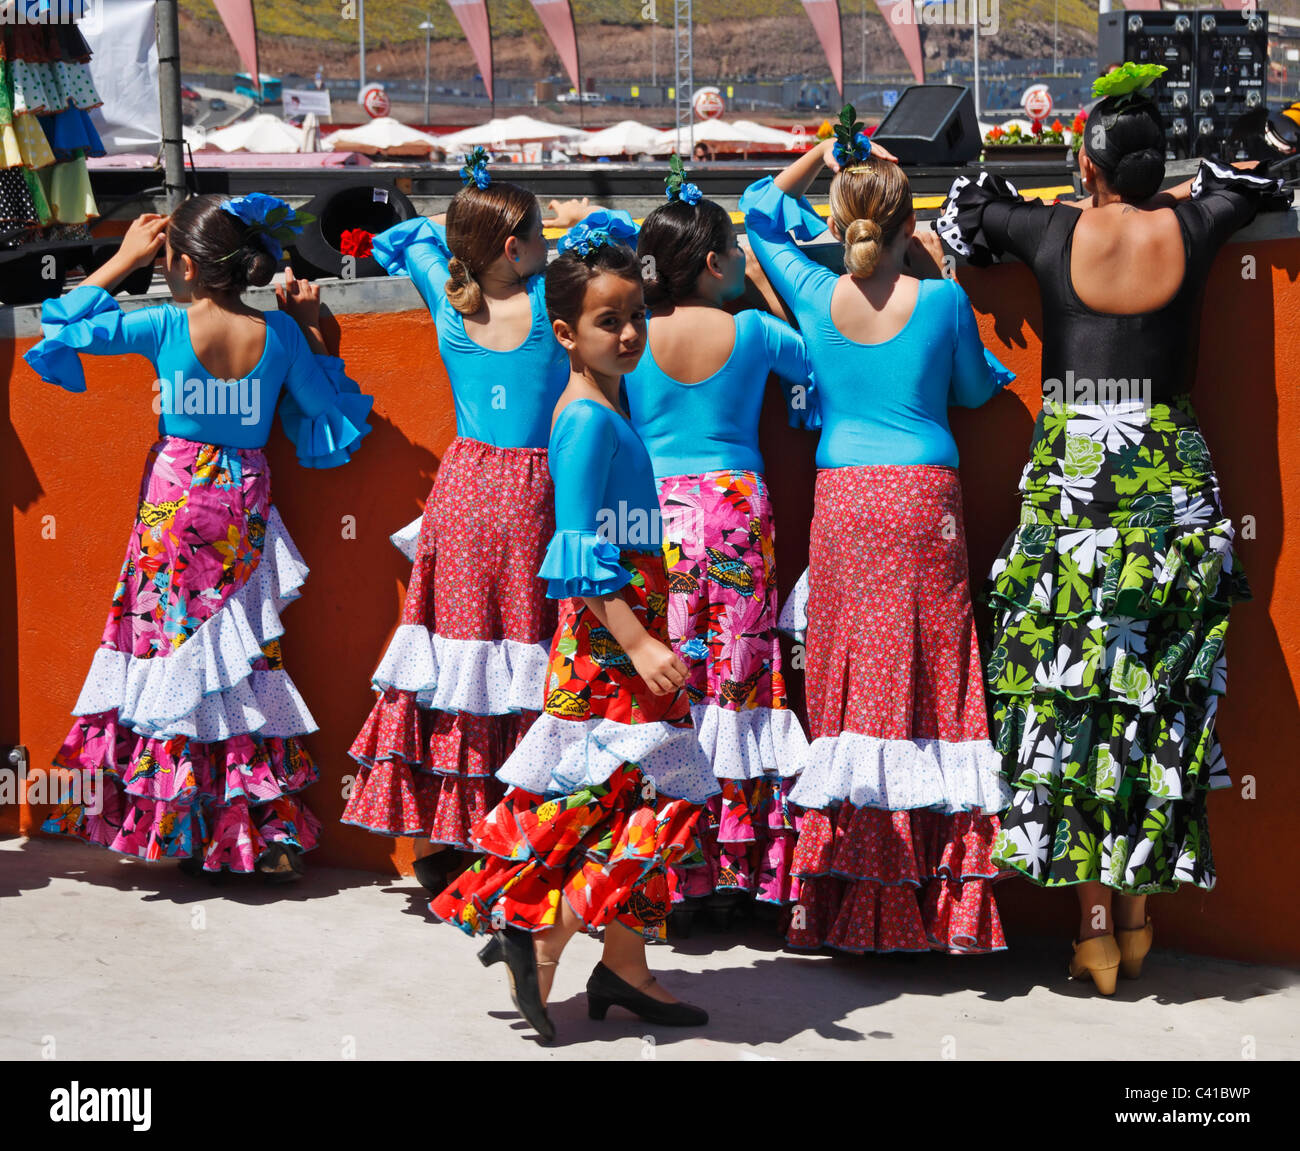 Young Flamenco dancers watching dancer from backstage at Feria de Abril. Spain - Stock Image